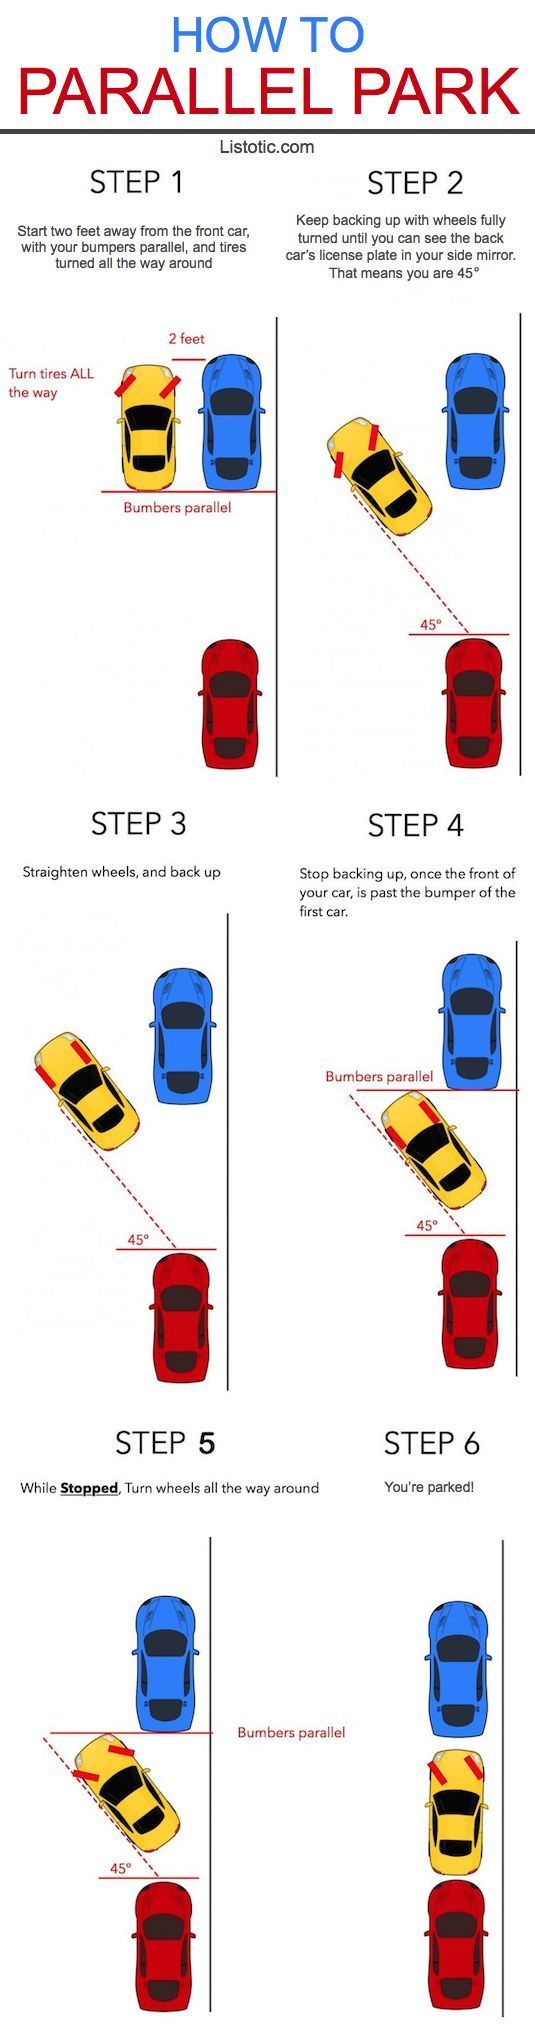 10 Helpful Ways To Master Driving Parallel Parking Step Guide And